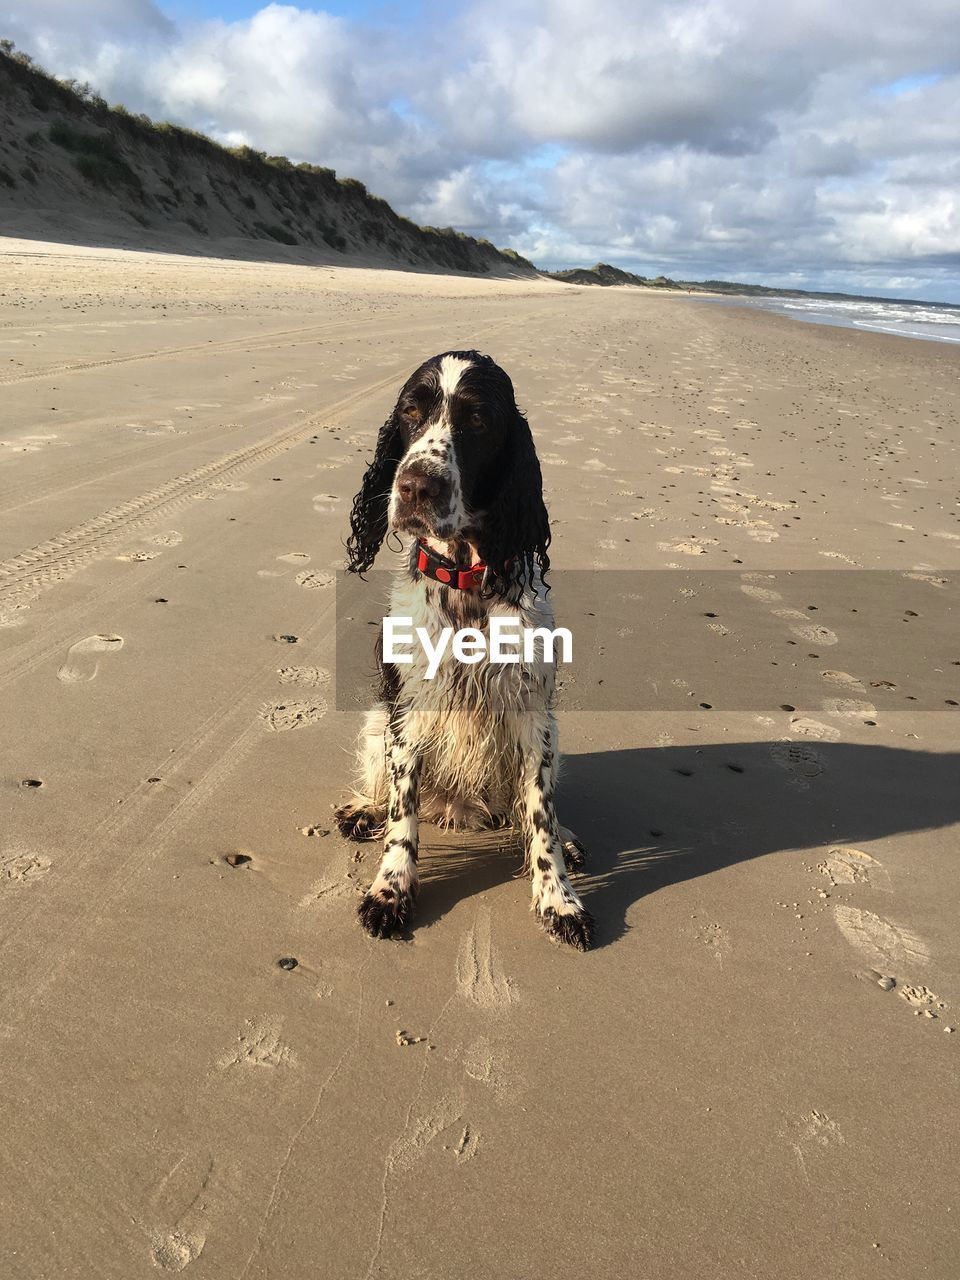 one animal, canine, dog, pets, domestic animals, domestic, mammal, animal, animal themes, land, sand, beach, cloud - sky, vertebrate, sky, nature, sunlight, sea, shadow, day, no people, outdoors, mouth open